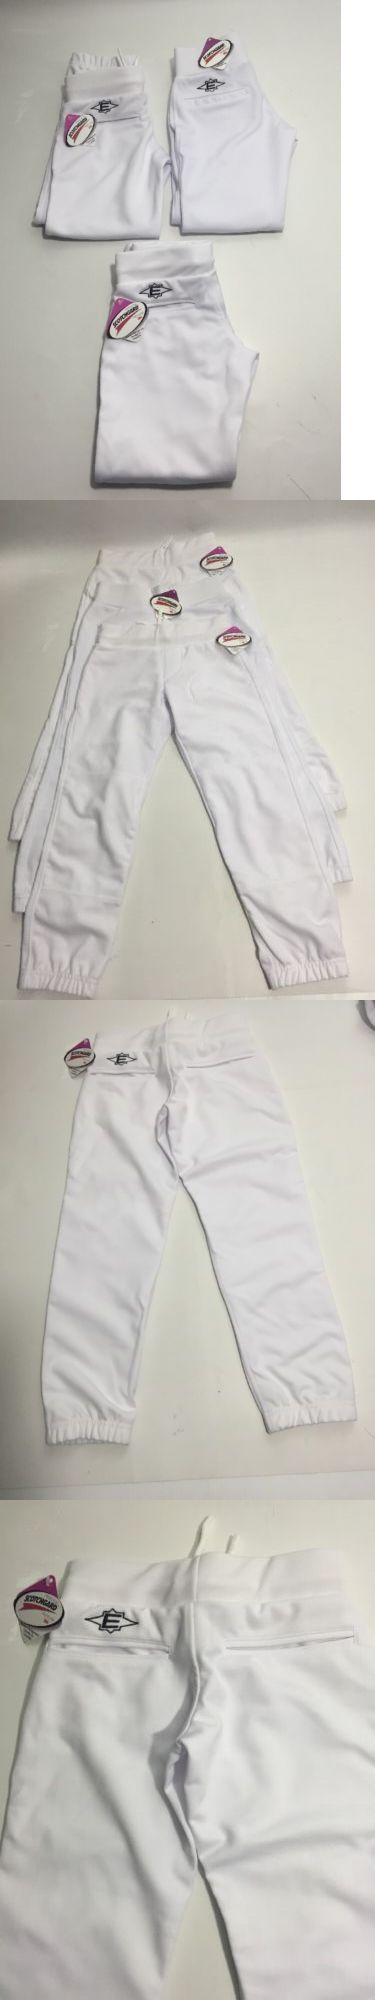 Baseball Pants 181349: Lot Of 3 Easton Girls Fastpitch Softball Pants White Youth Small Scotchgard 3M -> BUY IT NOW ONLY: $30 on eBay!